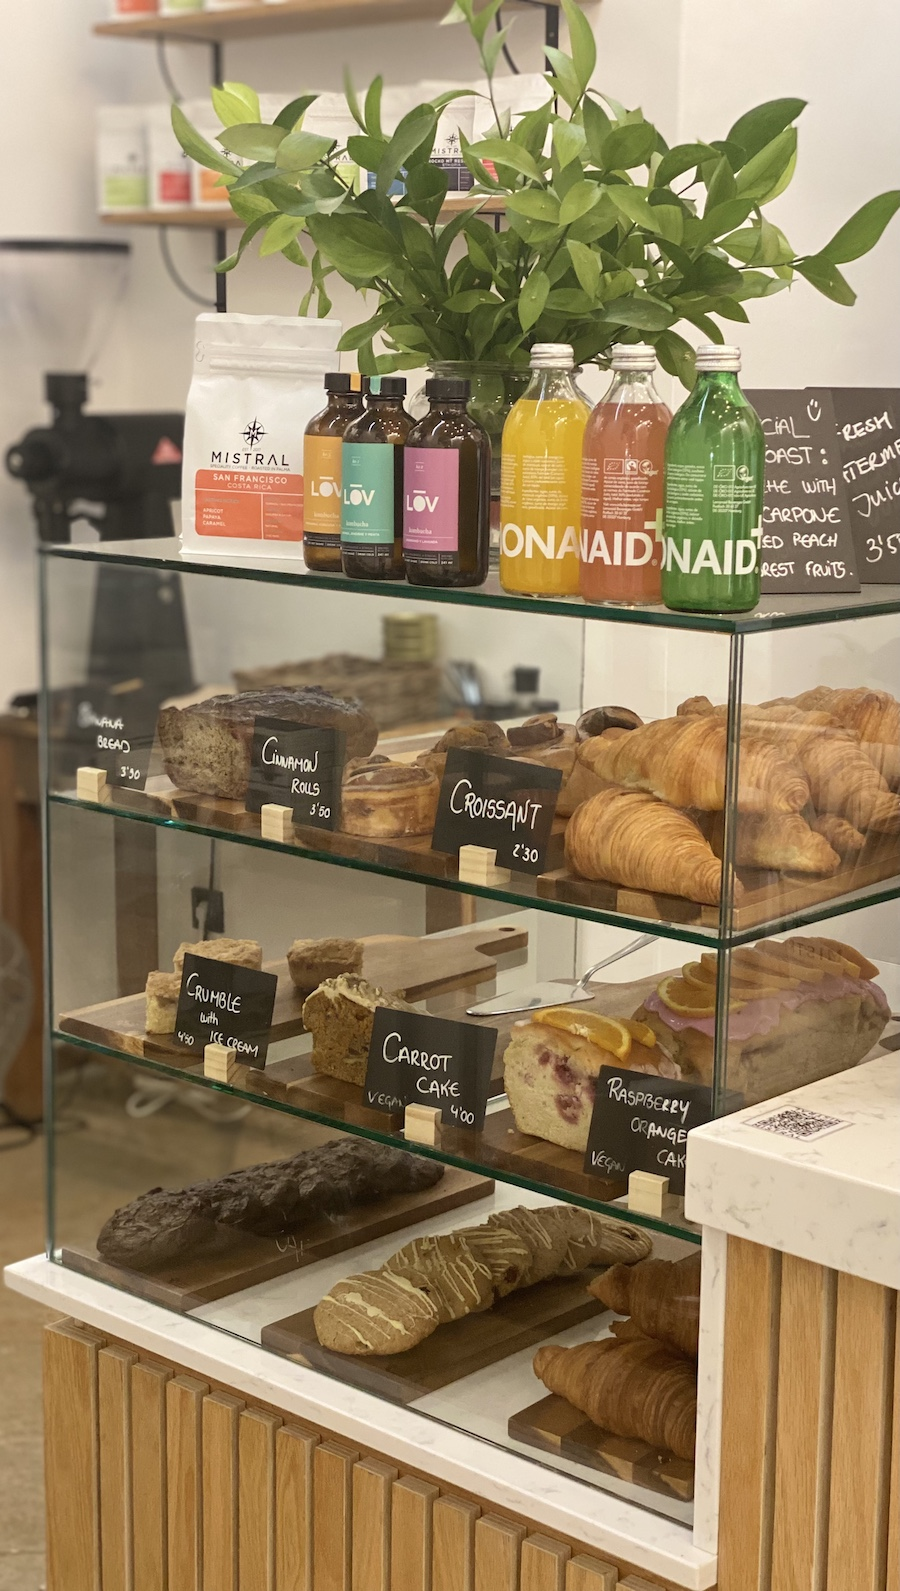 Mistral Cafe Mallorca Croissants and pastries